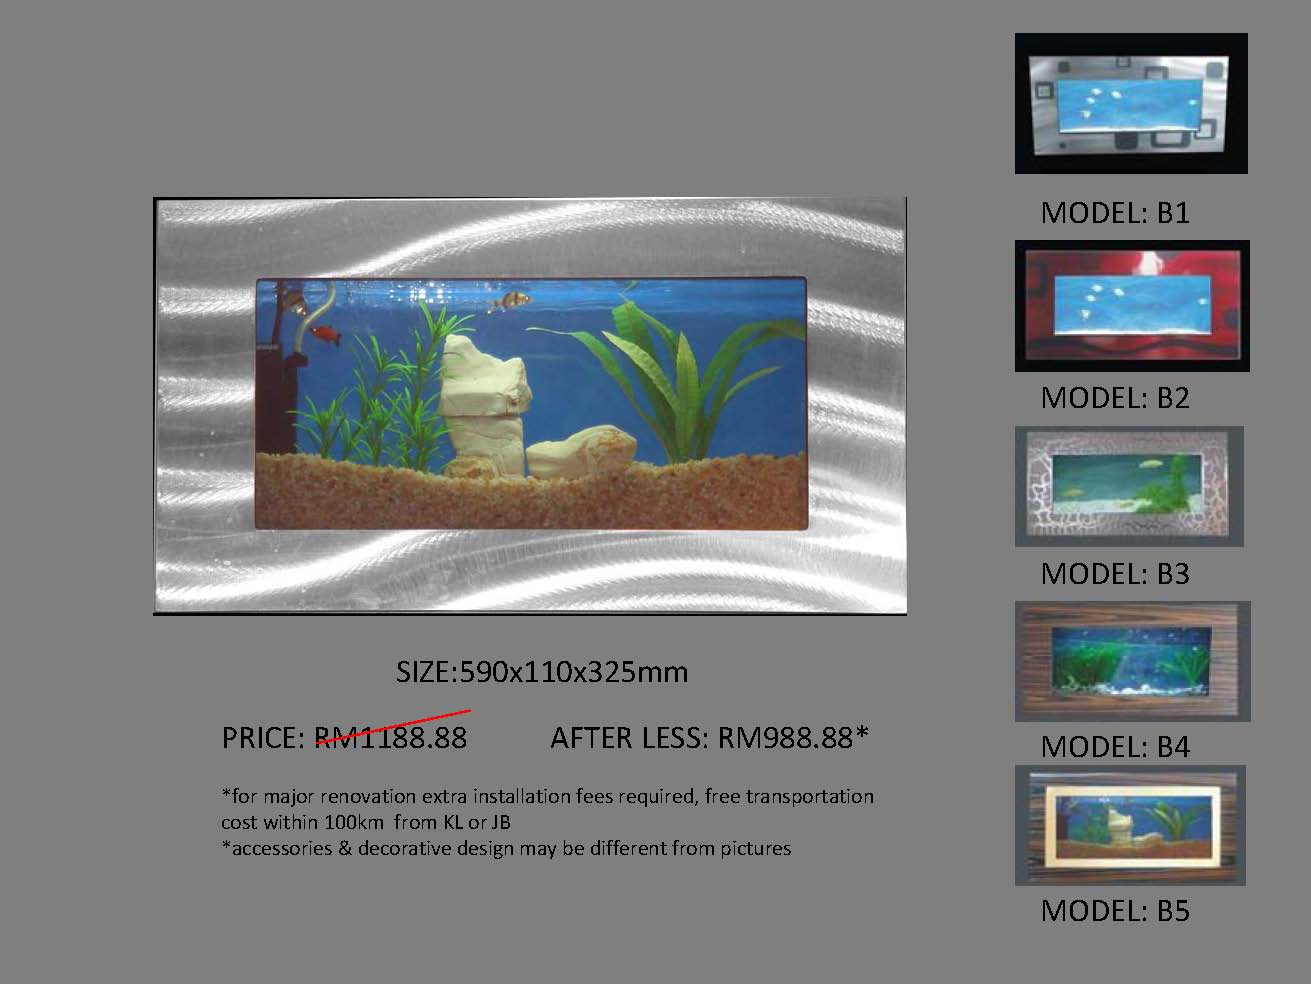 Wall Aquarium At Home Our Product